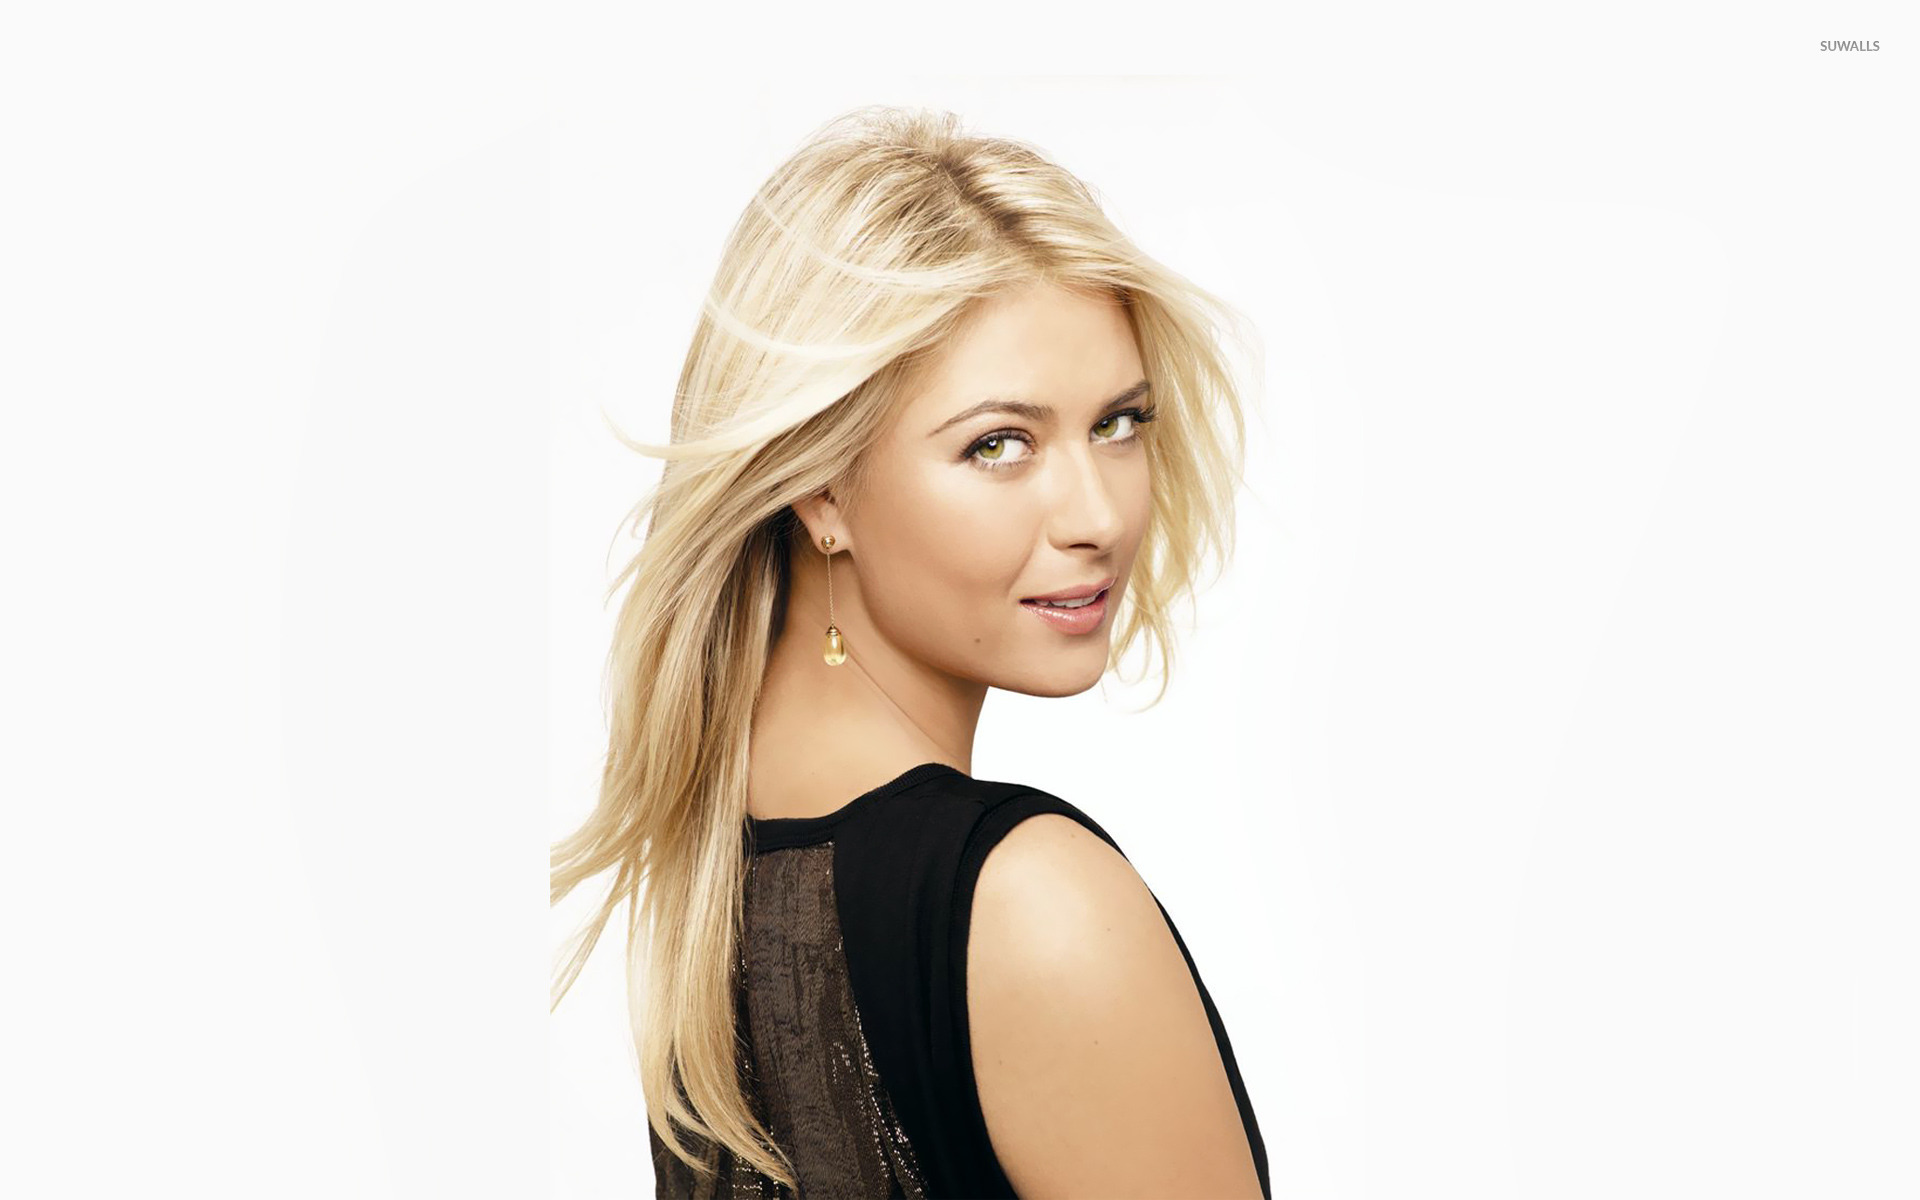 maria sharapova [11] wallpaper - sport wallpapers - #12870